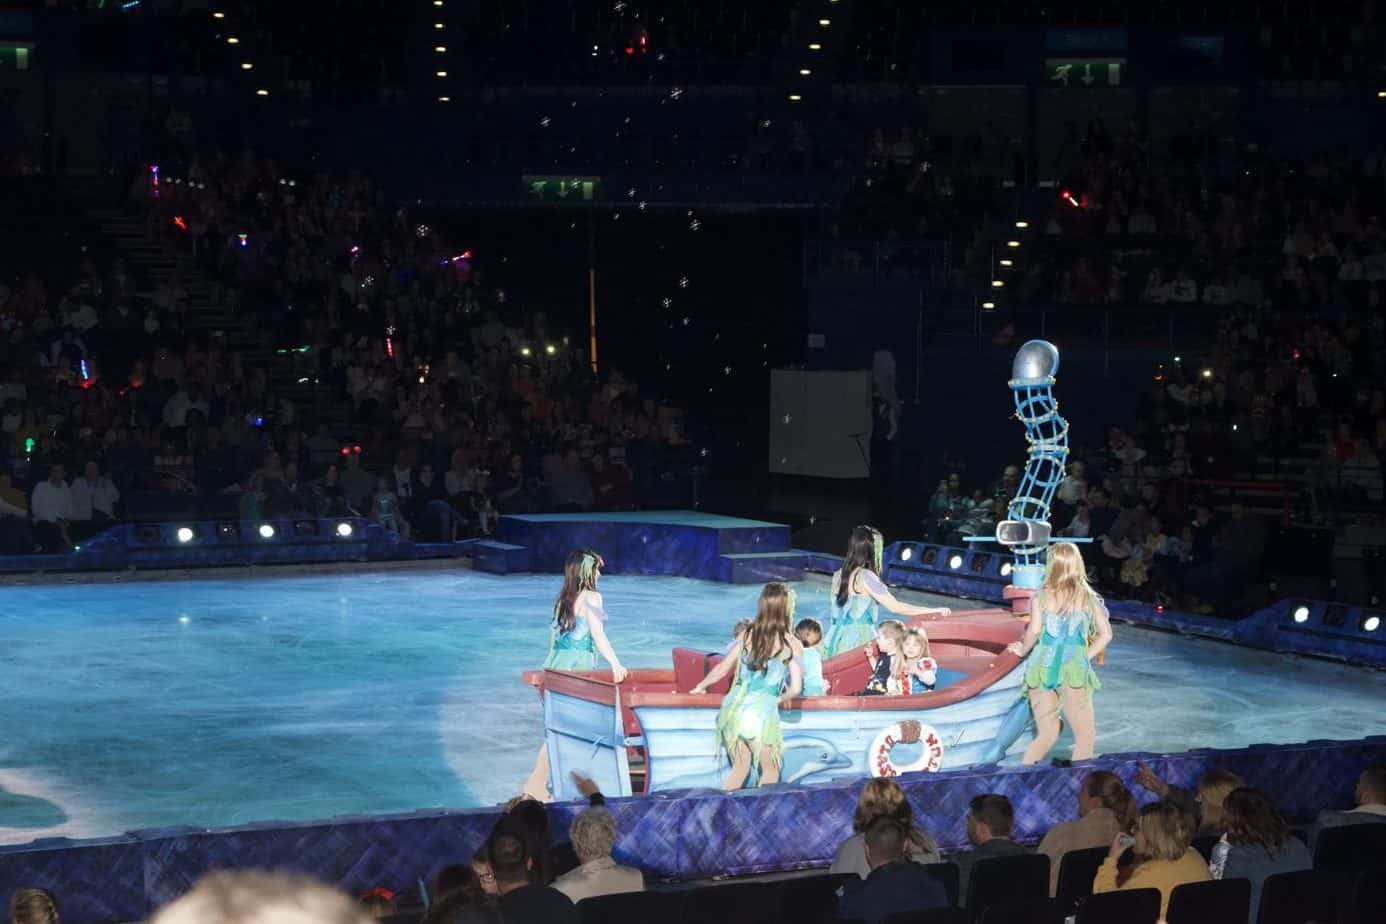 The little mermaids boat with special guests sailing across the ice